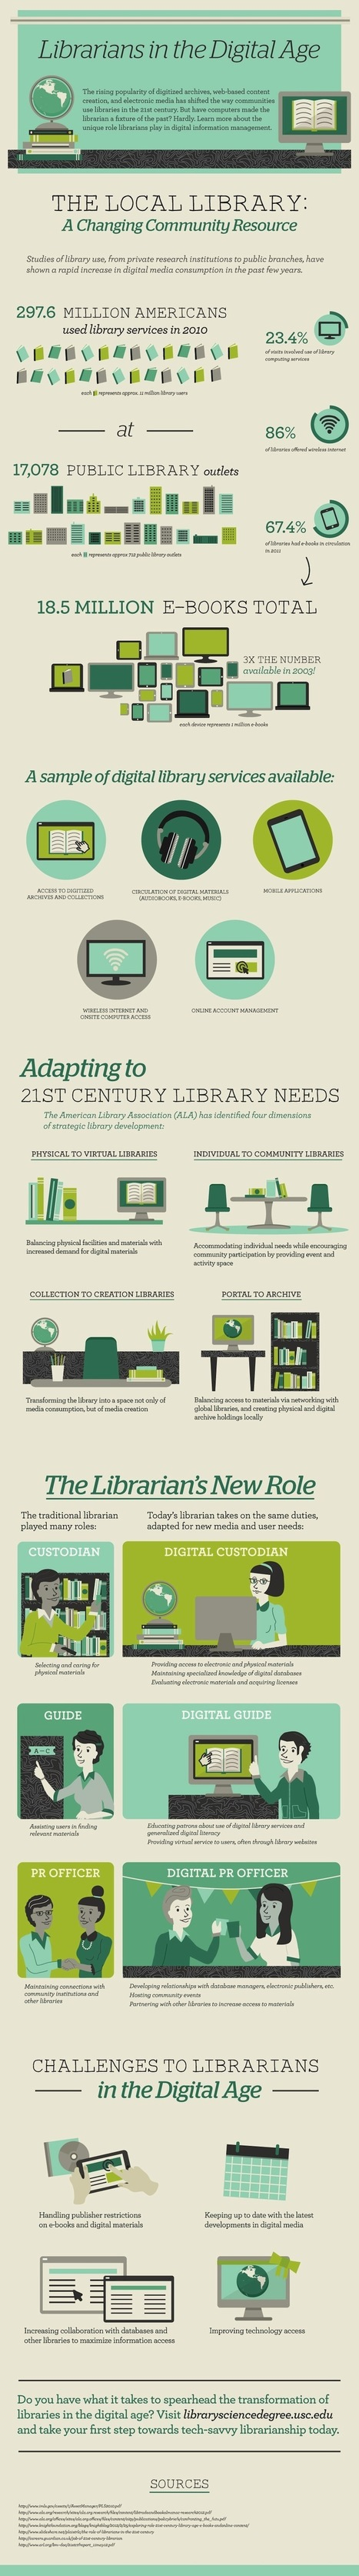 In digital age, librarians are needed more than ever [infographic] | Marketing Tutors | Scoop.it